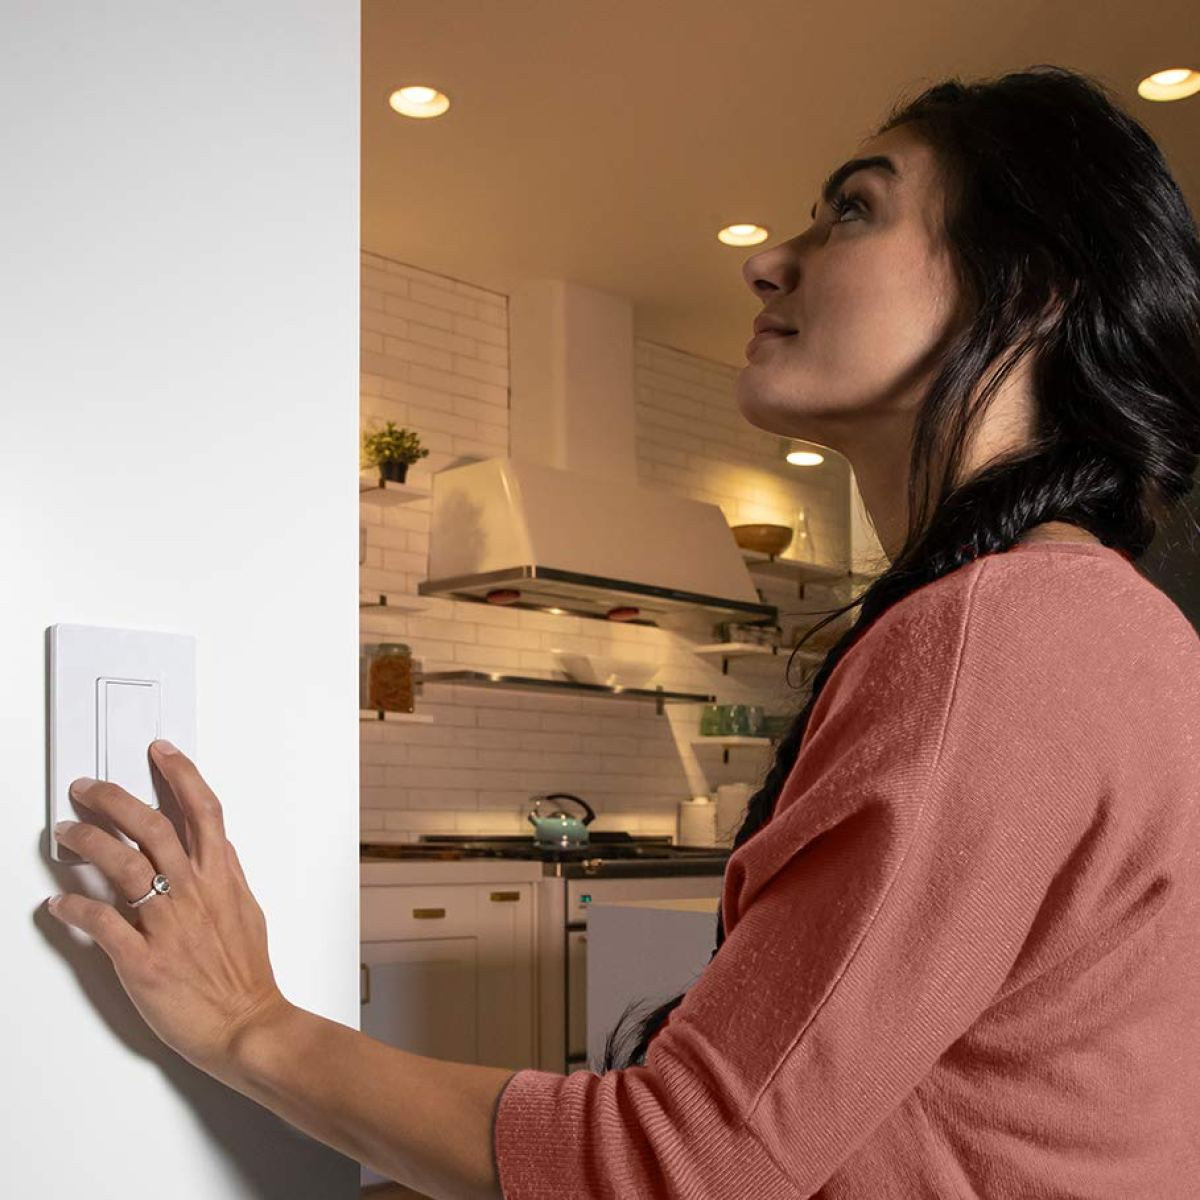 woman turning on light with switch